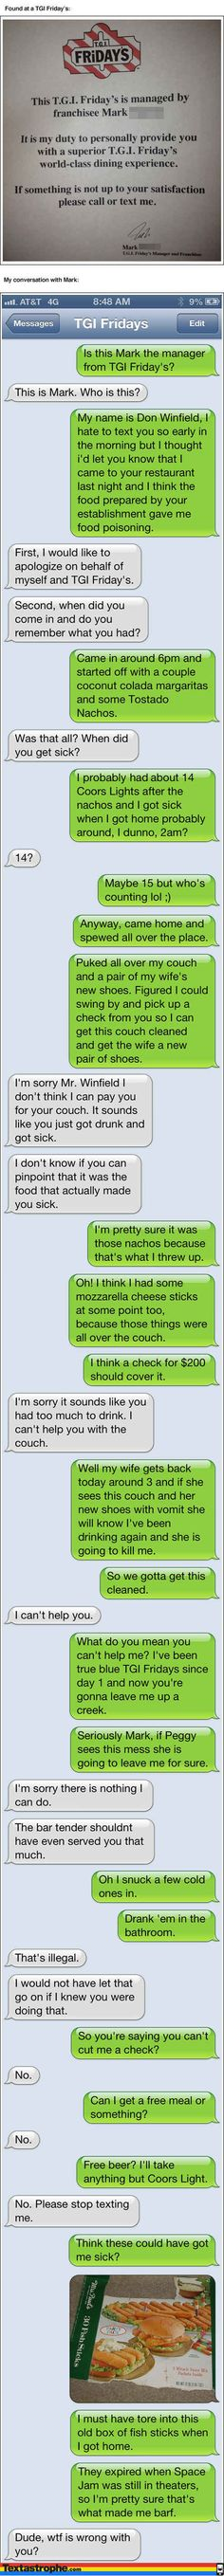 The Food Poisoning. | 21 Tricks That Took Phone Pranking To A Whole New Level